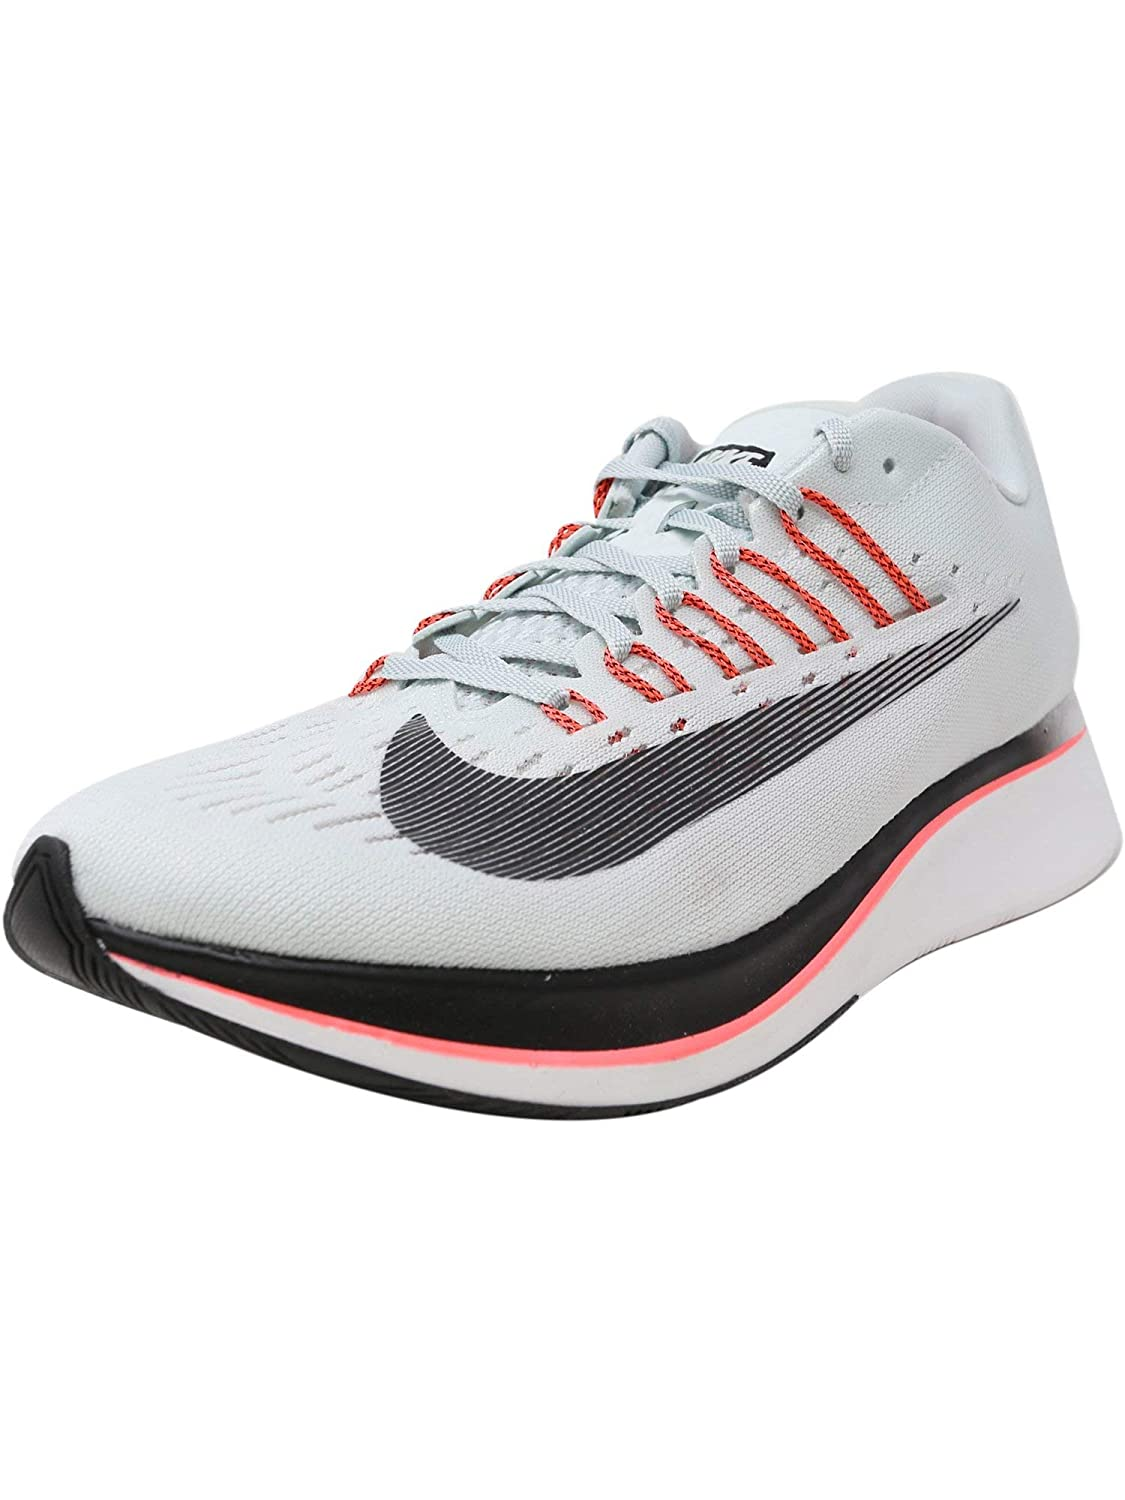 Barely Grey   Oil Grey  Hot Punch 8 B(M) US Nike Women's WMNS Zoom Fly Trainers